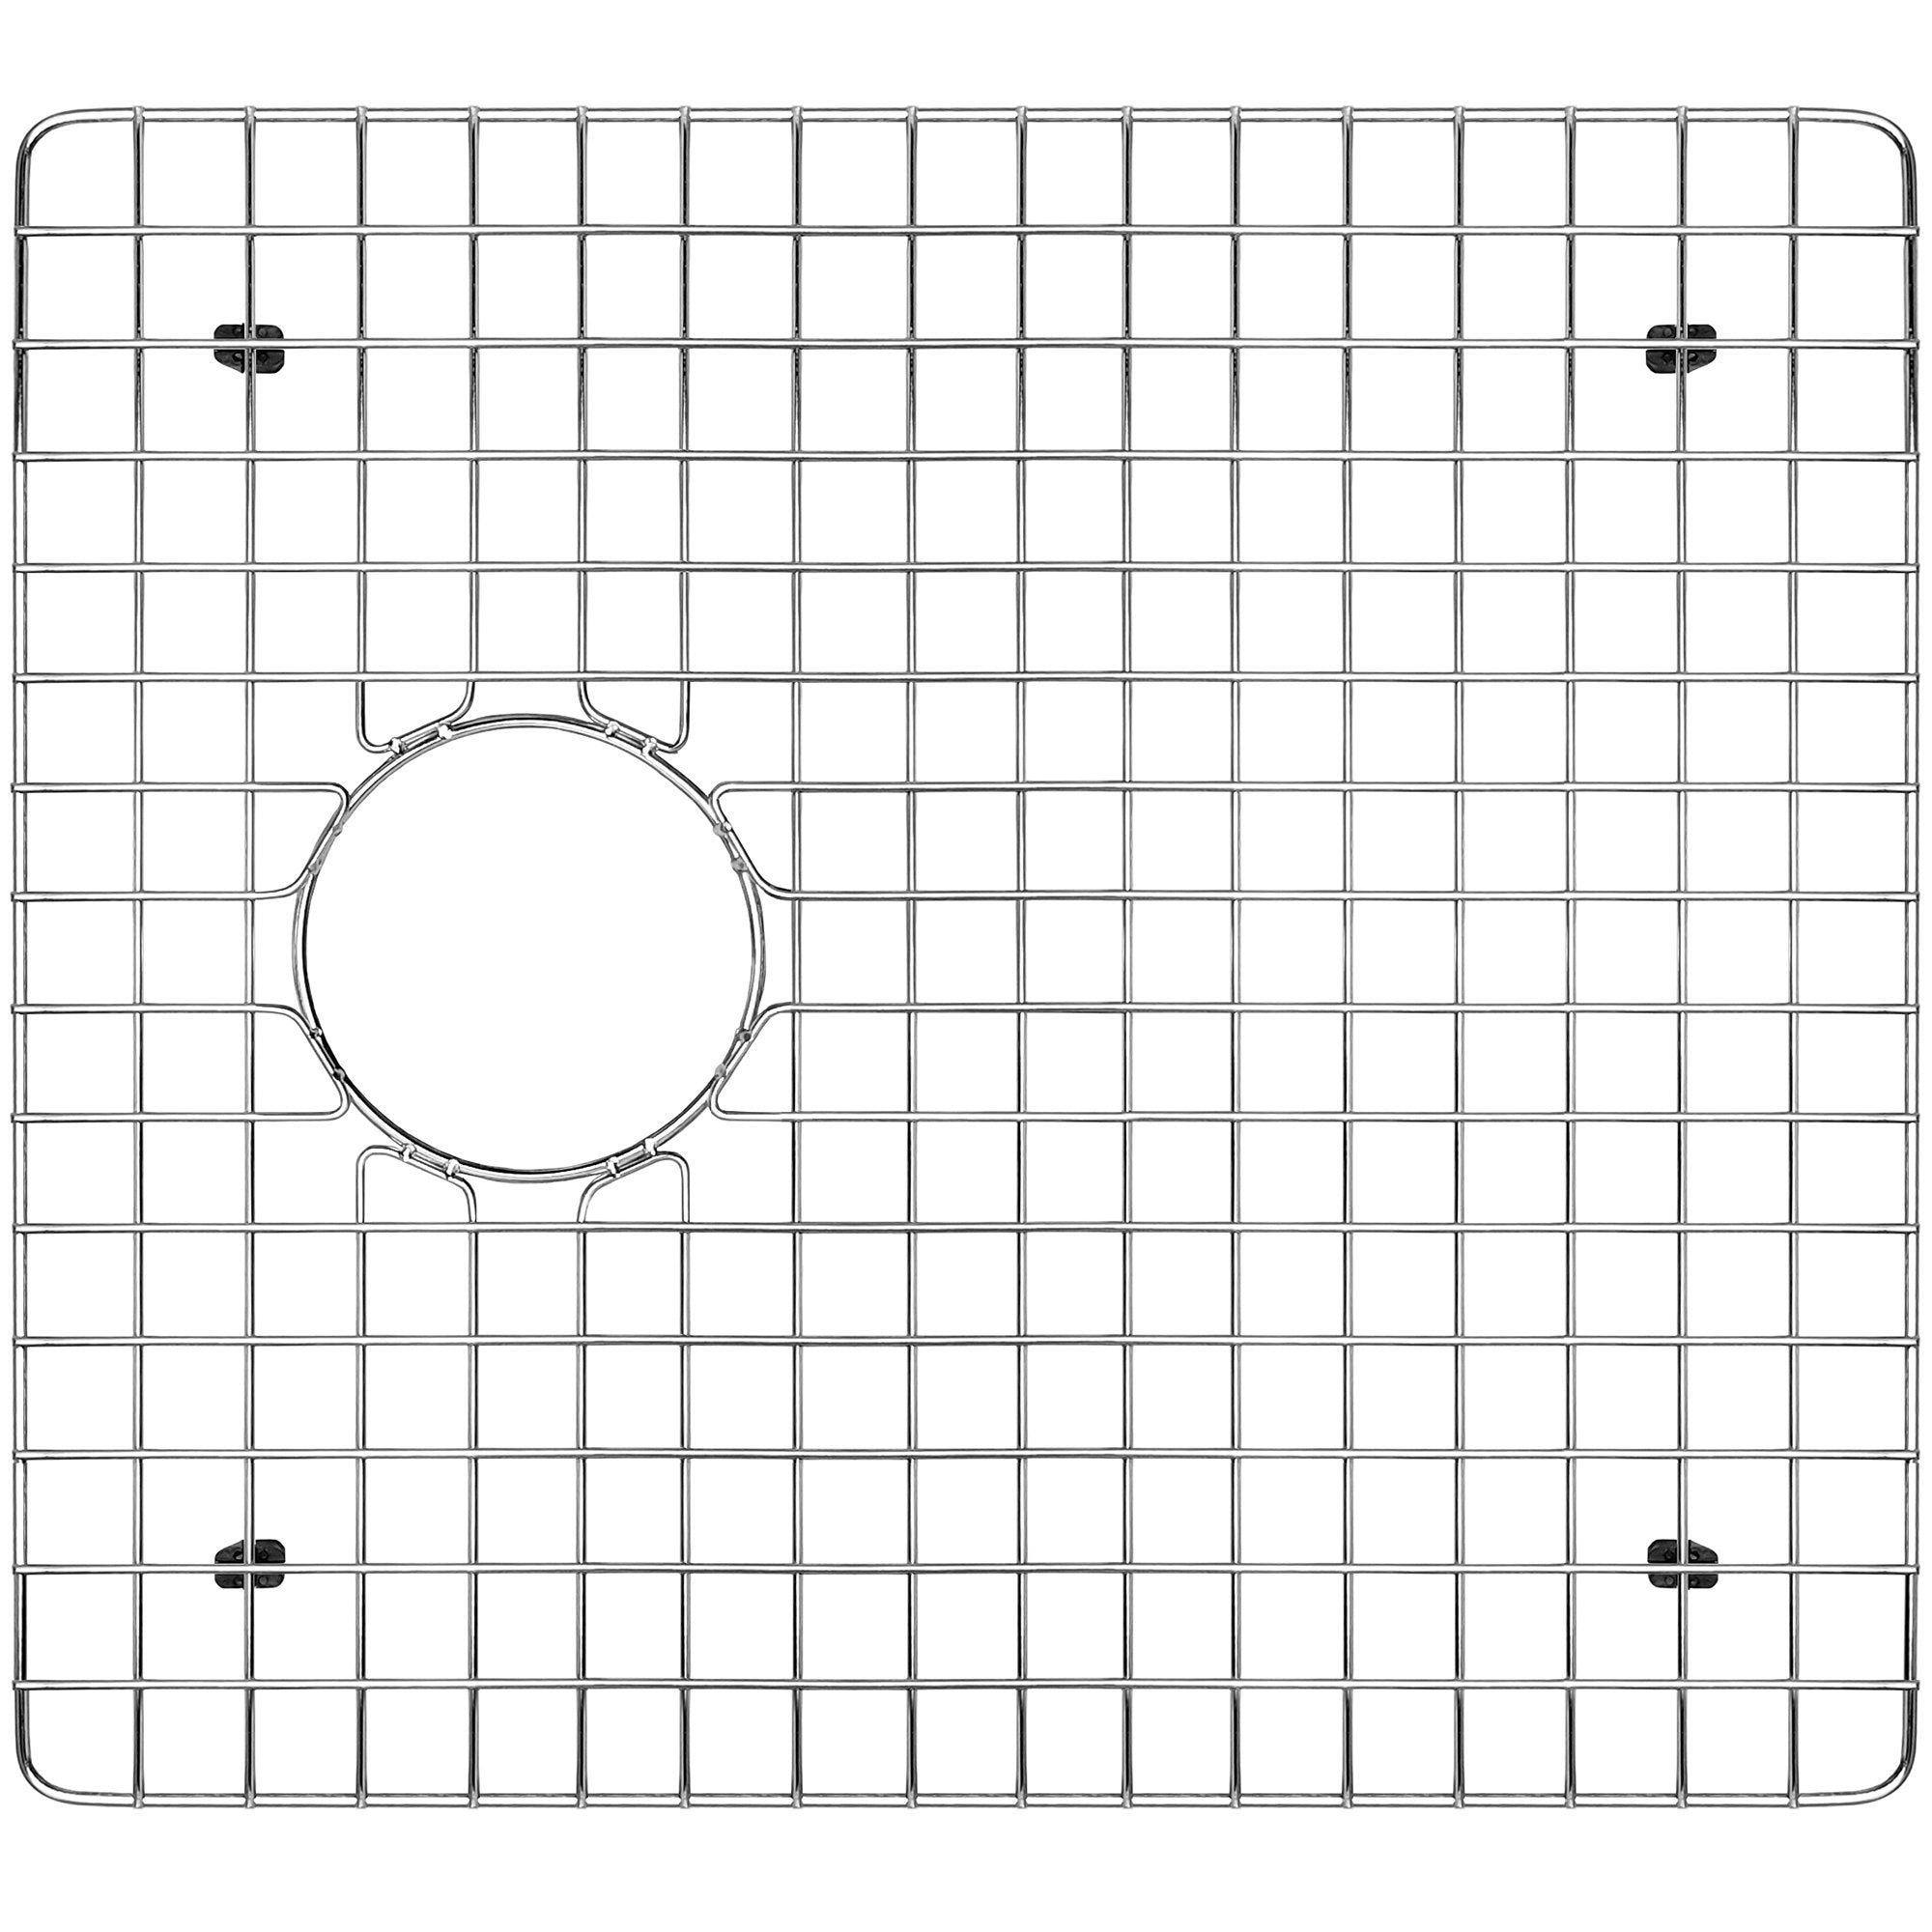 Stainless Steel Kitchen Sink Grid For Noah's Sink Model WHNCMD5221